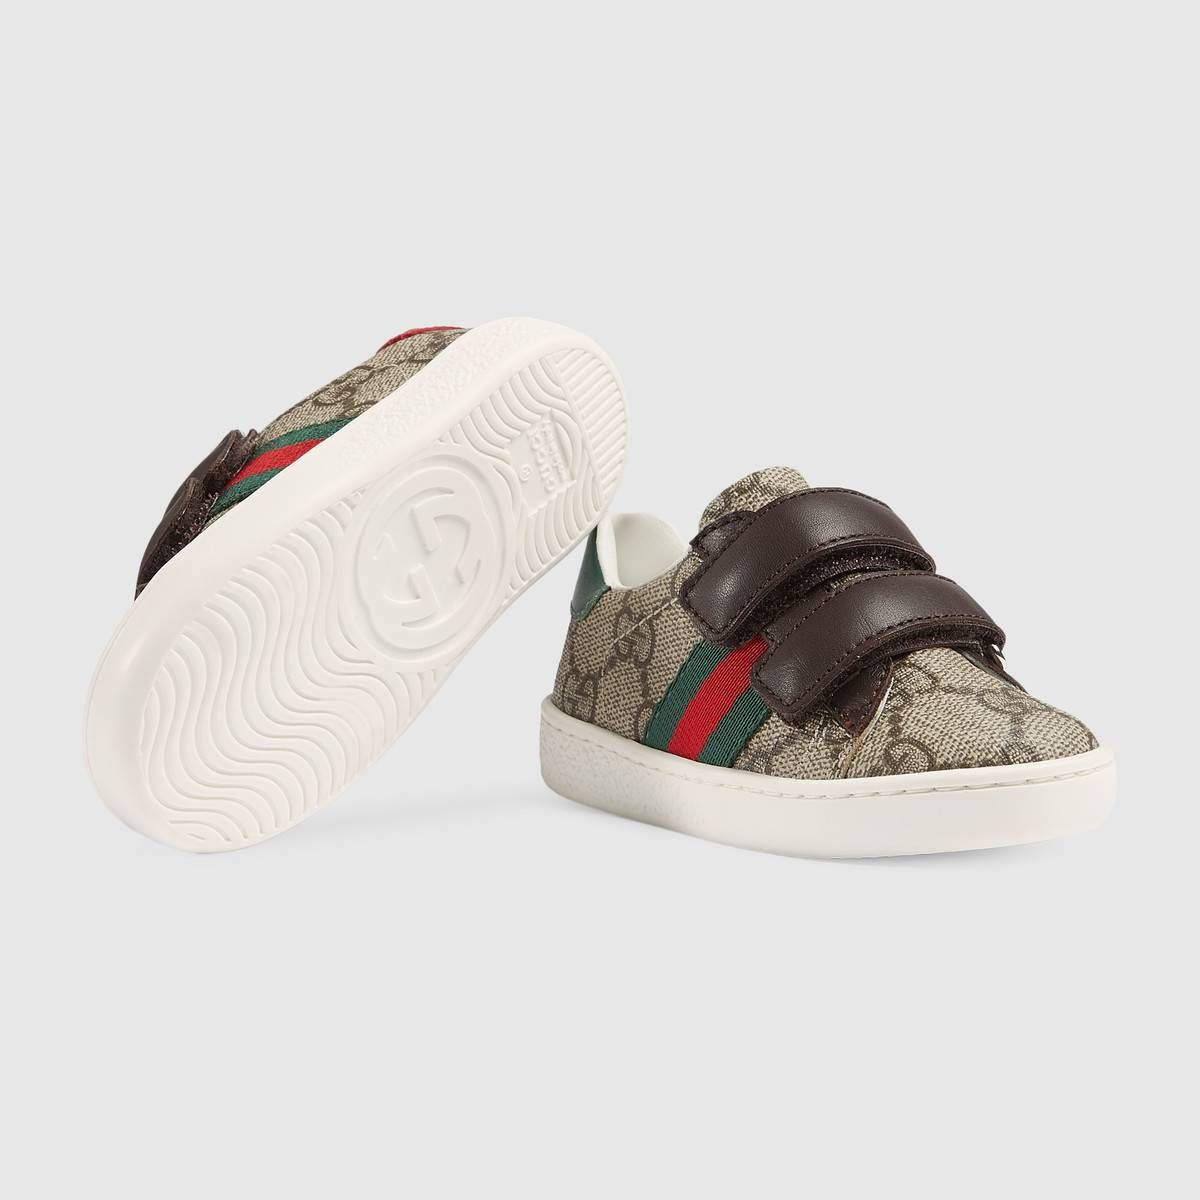 c22f817bae7 Shop the Toddler Ace GG Supreme sneaker by Gucci. null